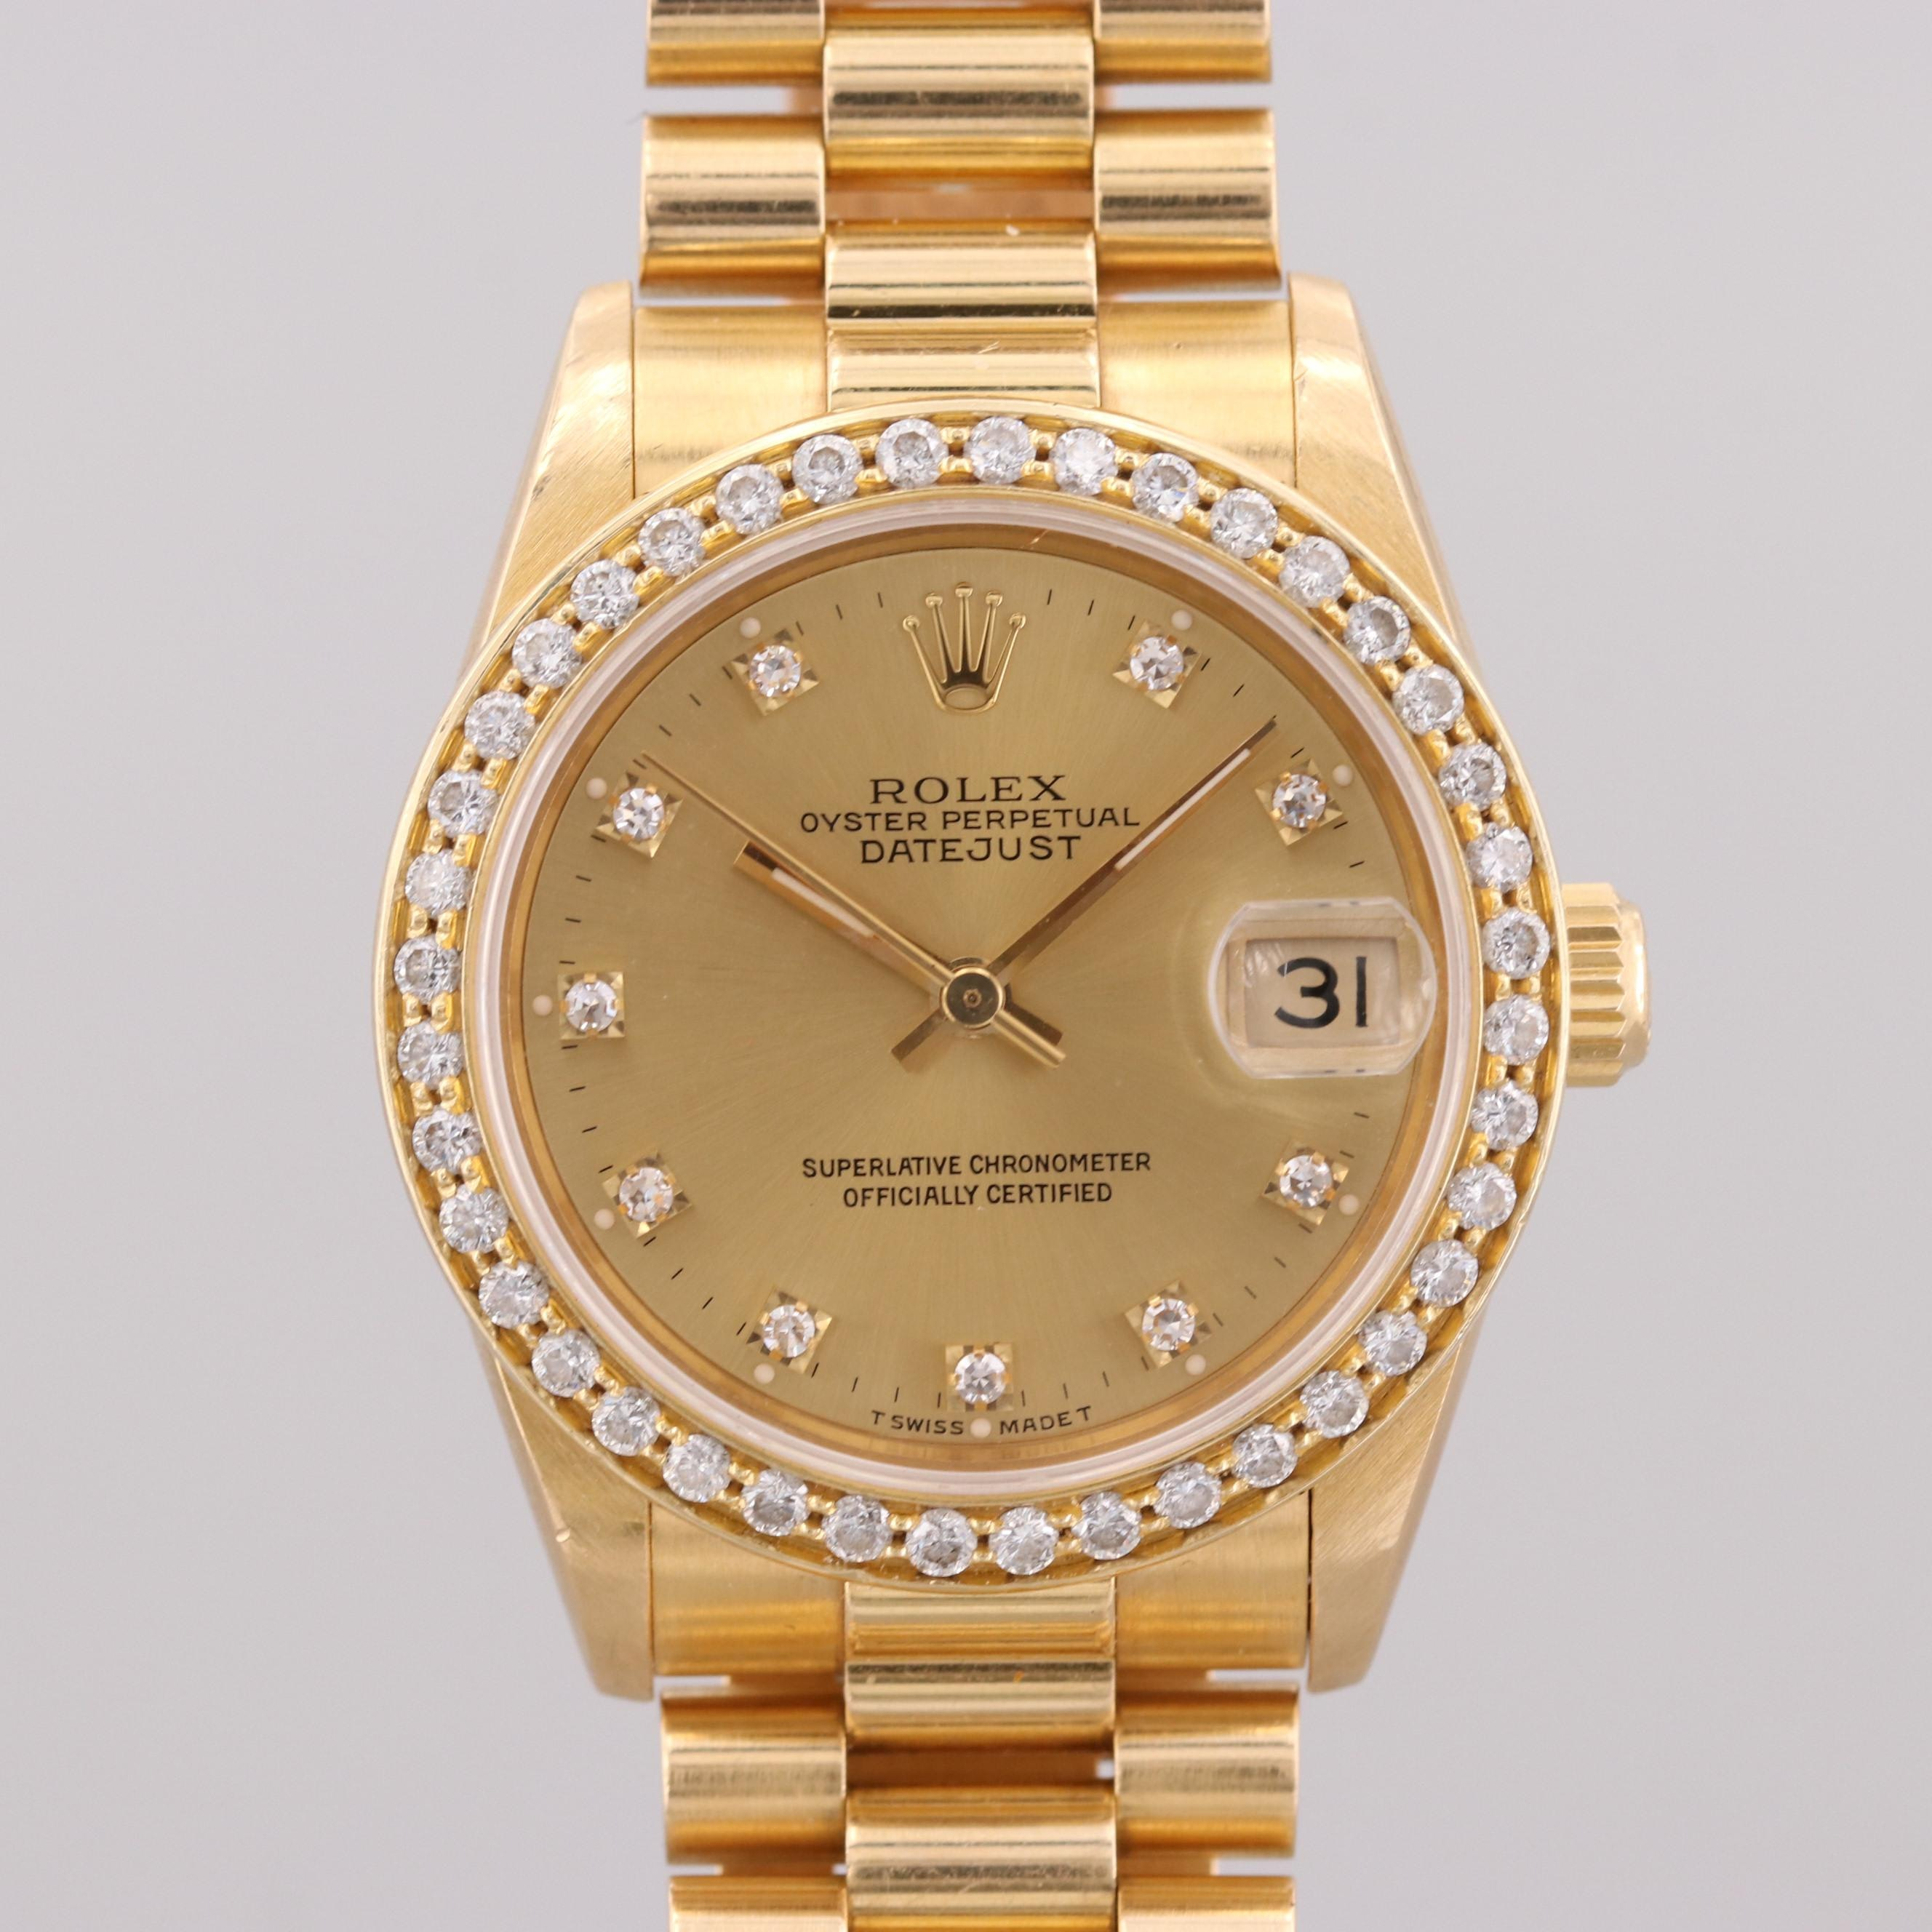 Rolex Datejust 18K Yellow Gold Wristwatch With 1.18 CTW Diamond Bezel and Dial